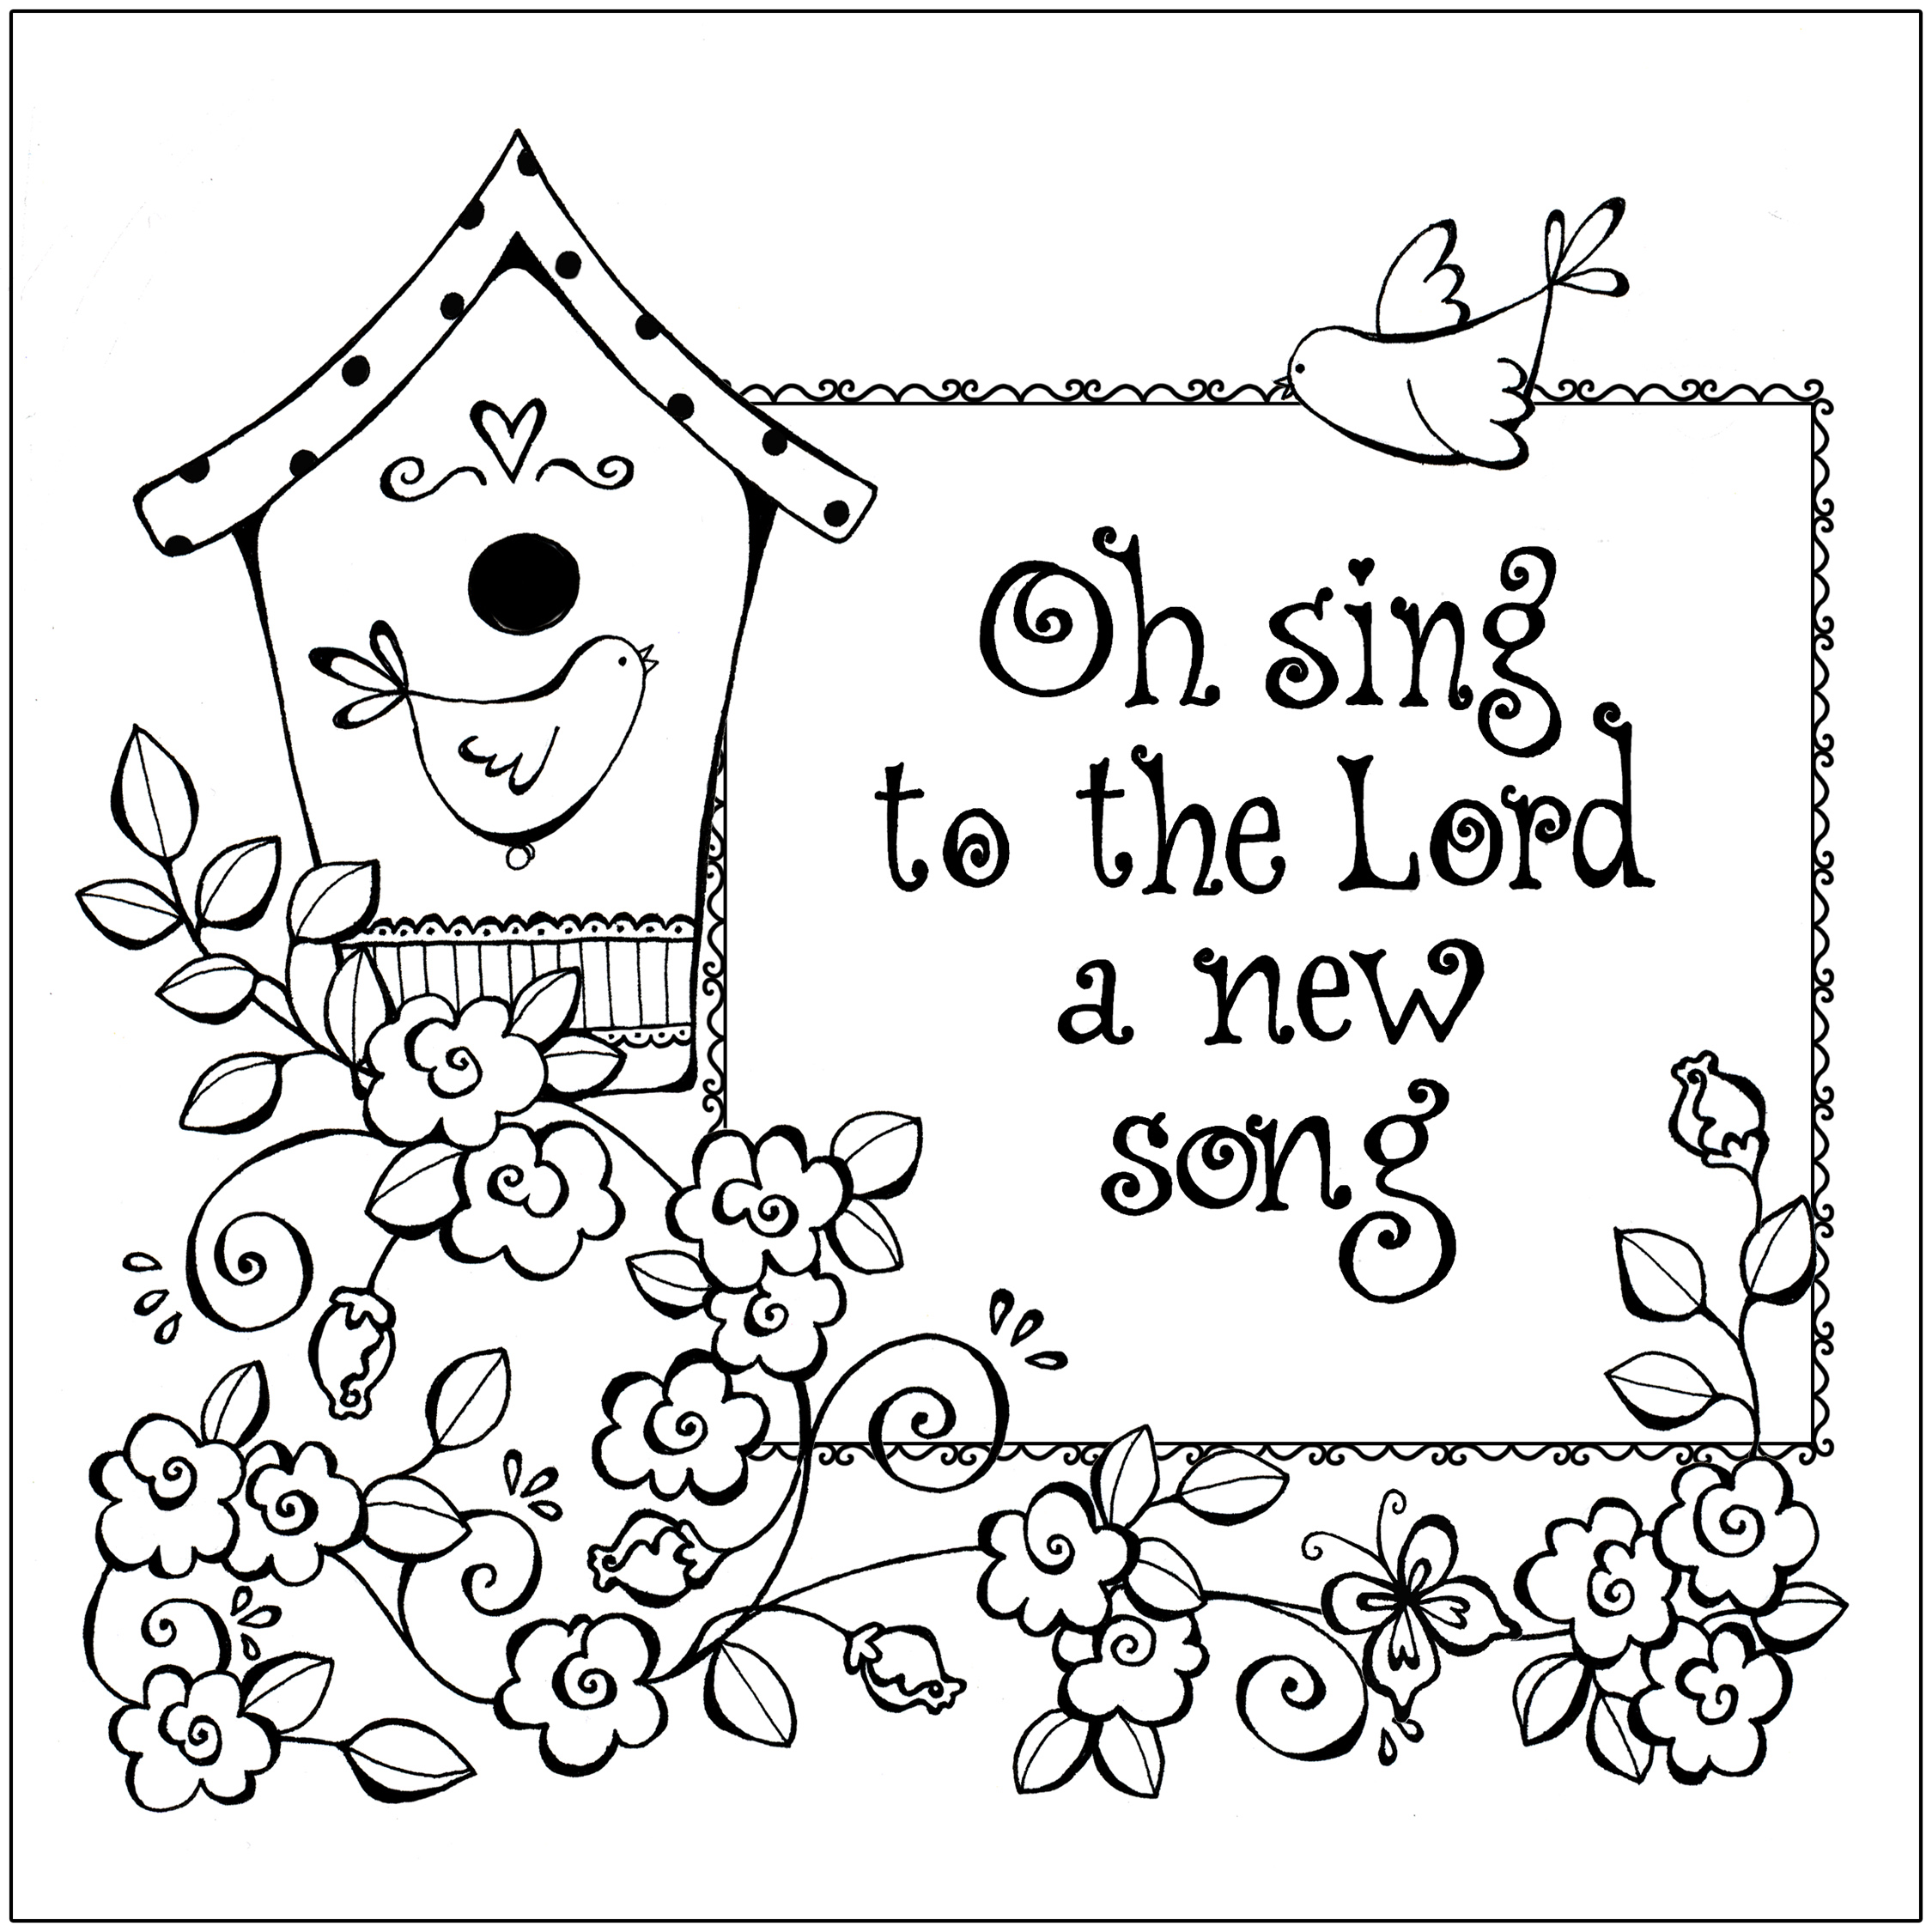 Coloring pages bible stories preschoolers - Christian Coloring Page Printable Images